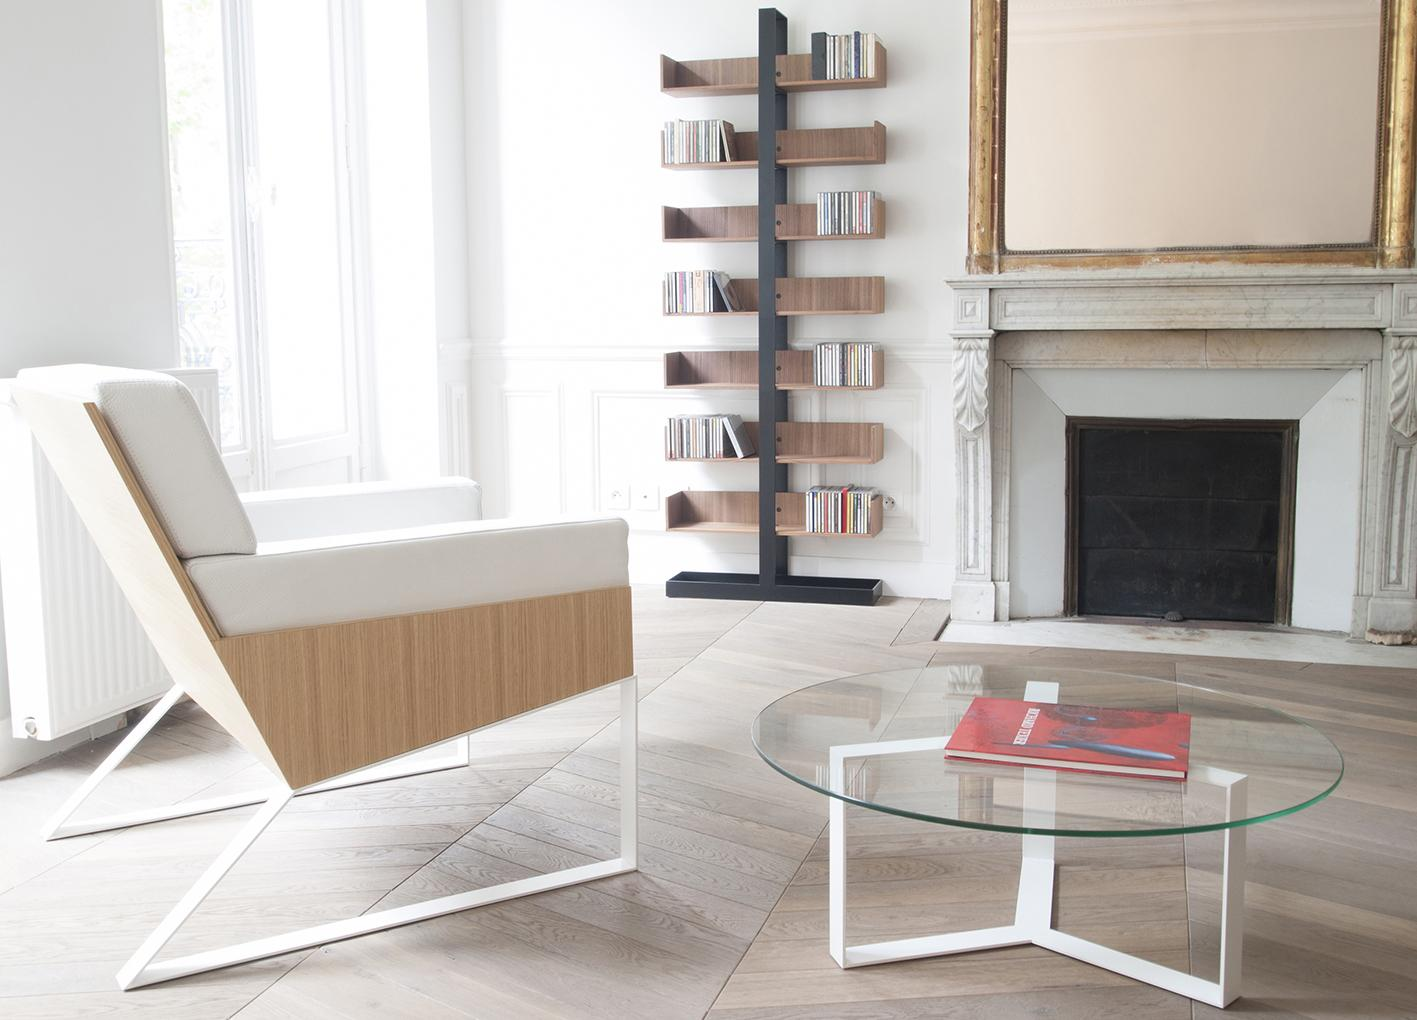 Les meubles design d alex de rouvray paperblog for Meubles design paris